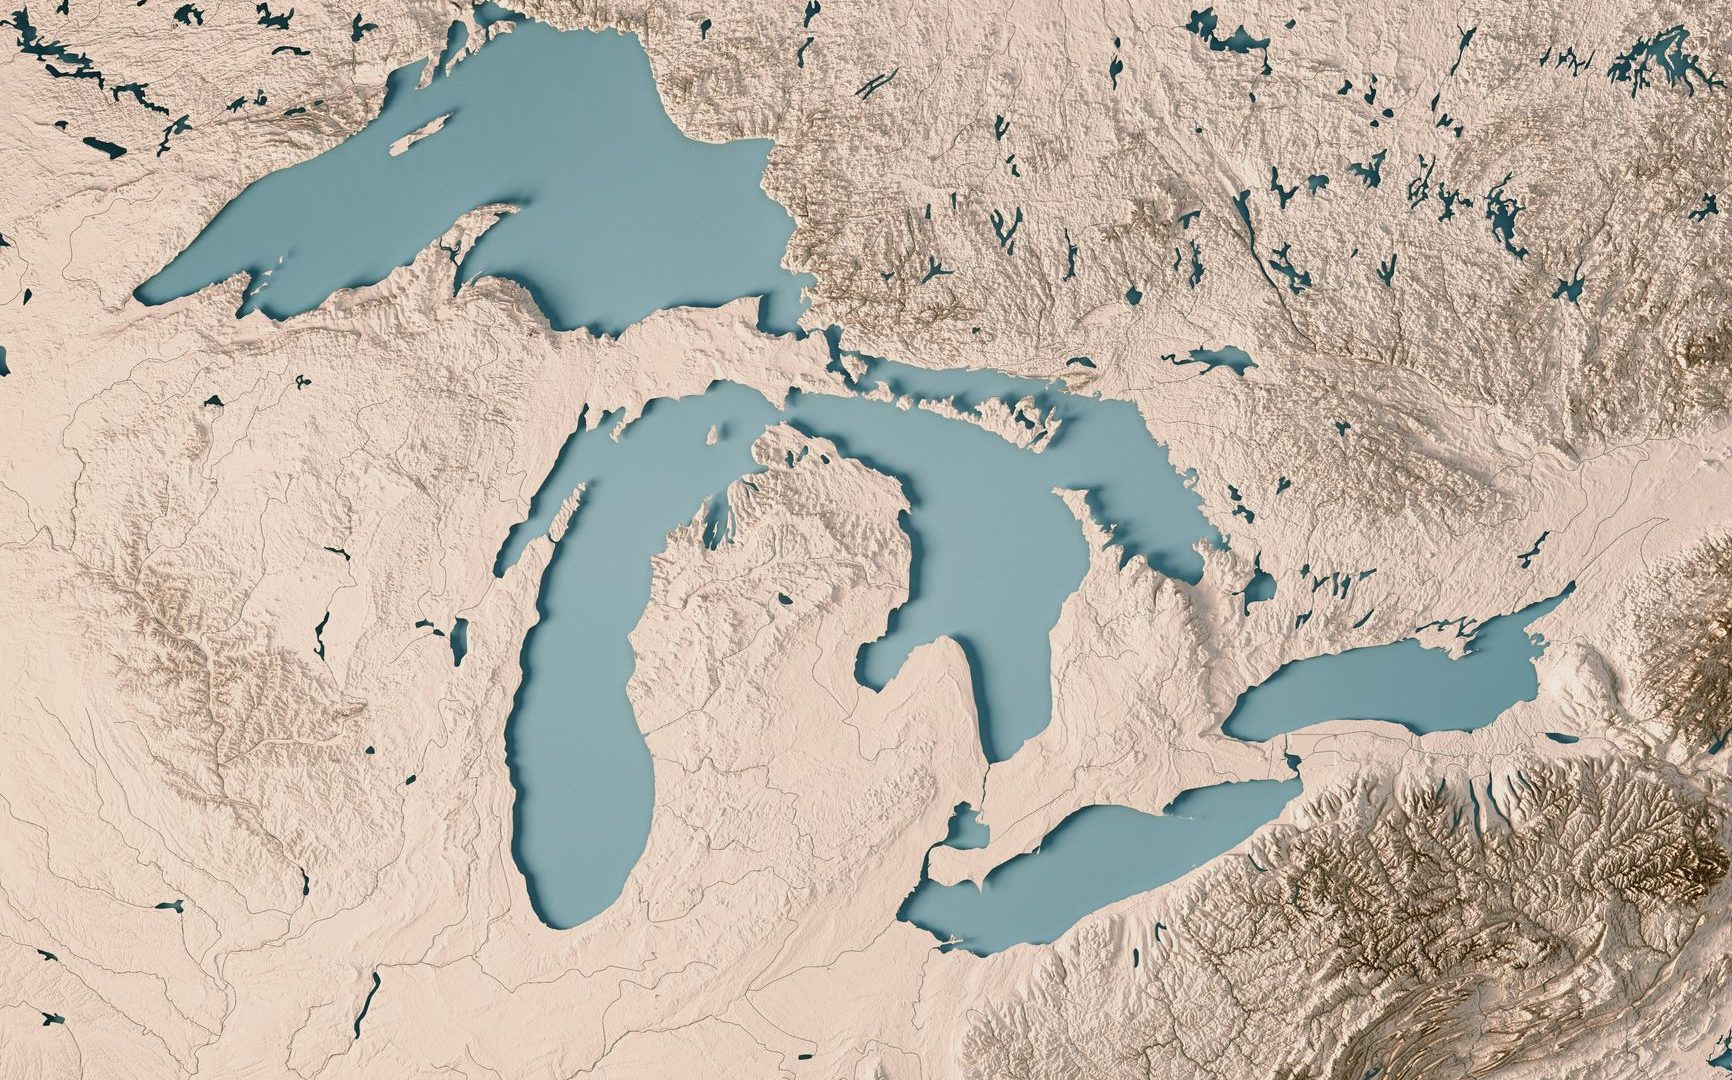 Study Examines Impact Of Pharmaceuticals On The Great Lakes